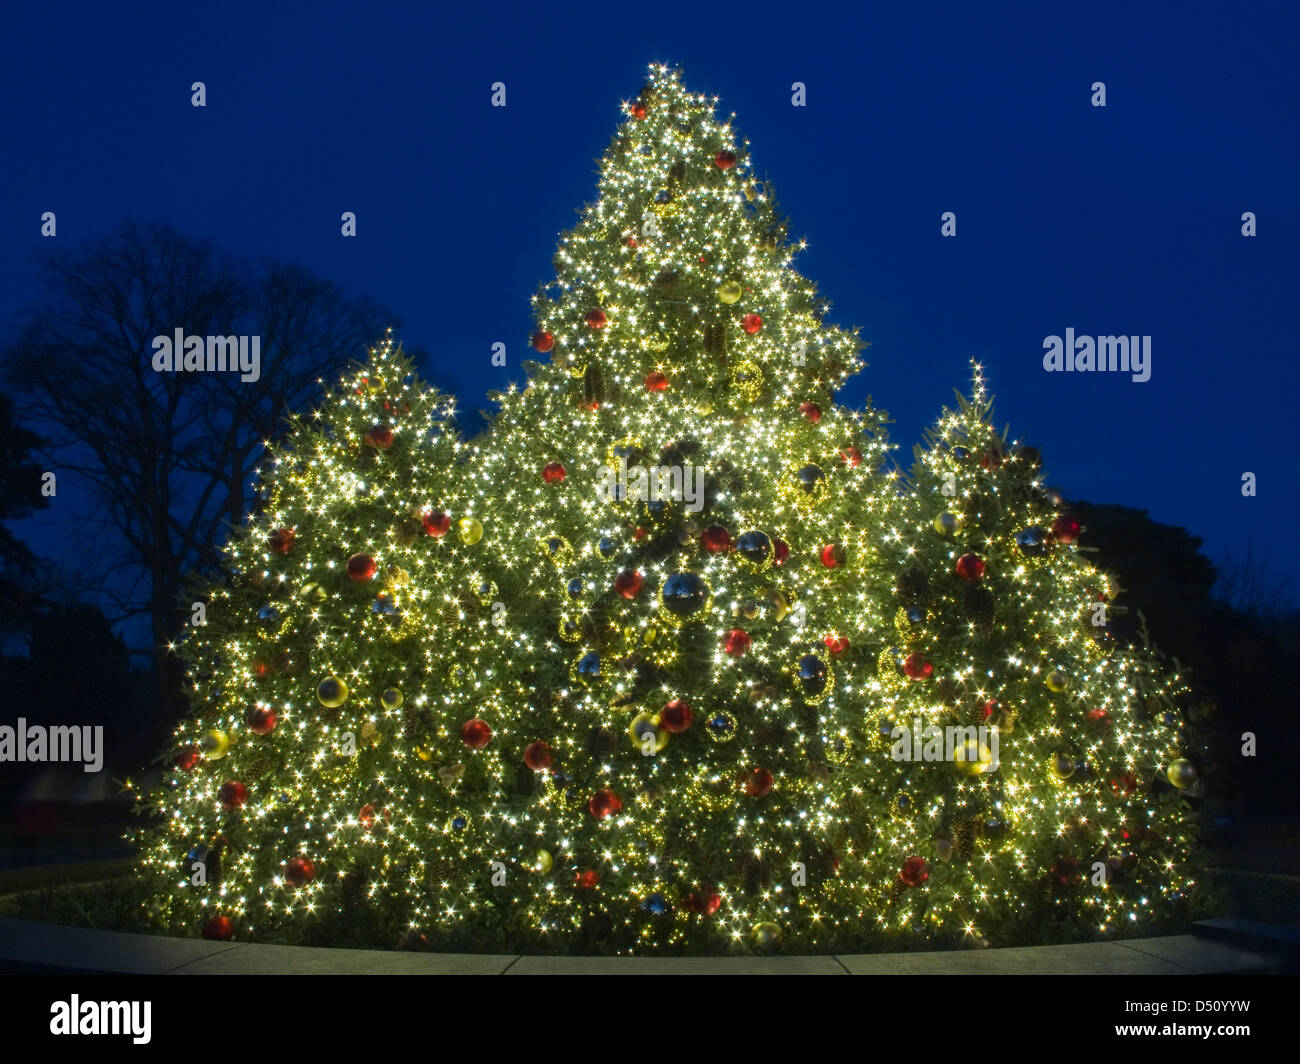 Twinkle Lights Stock Photos & Twinkle Lights Stock Images - Alamy